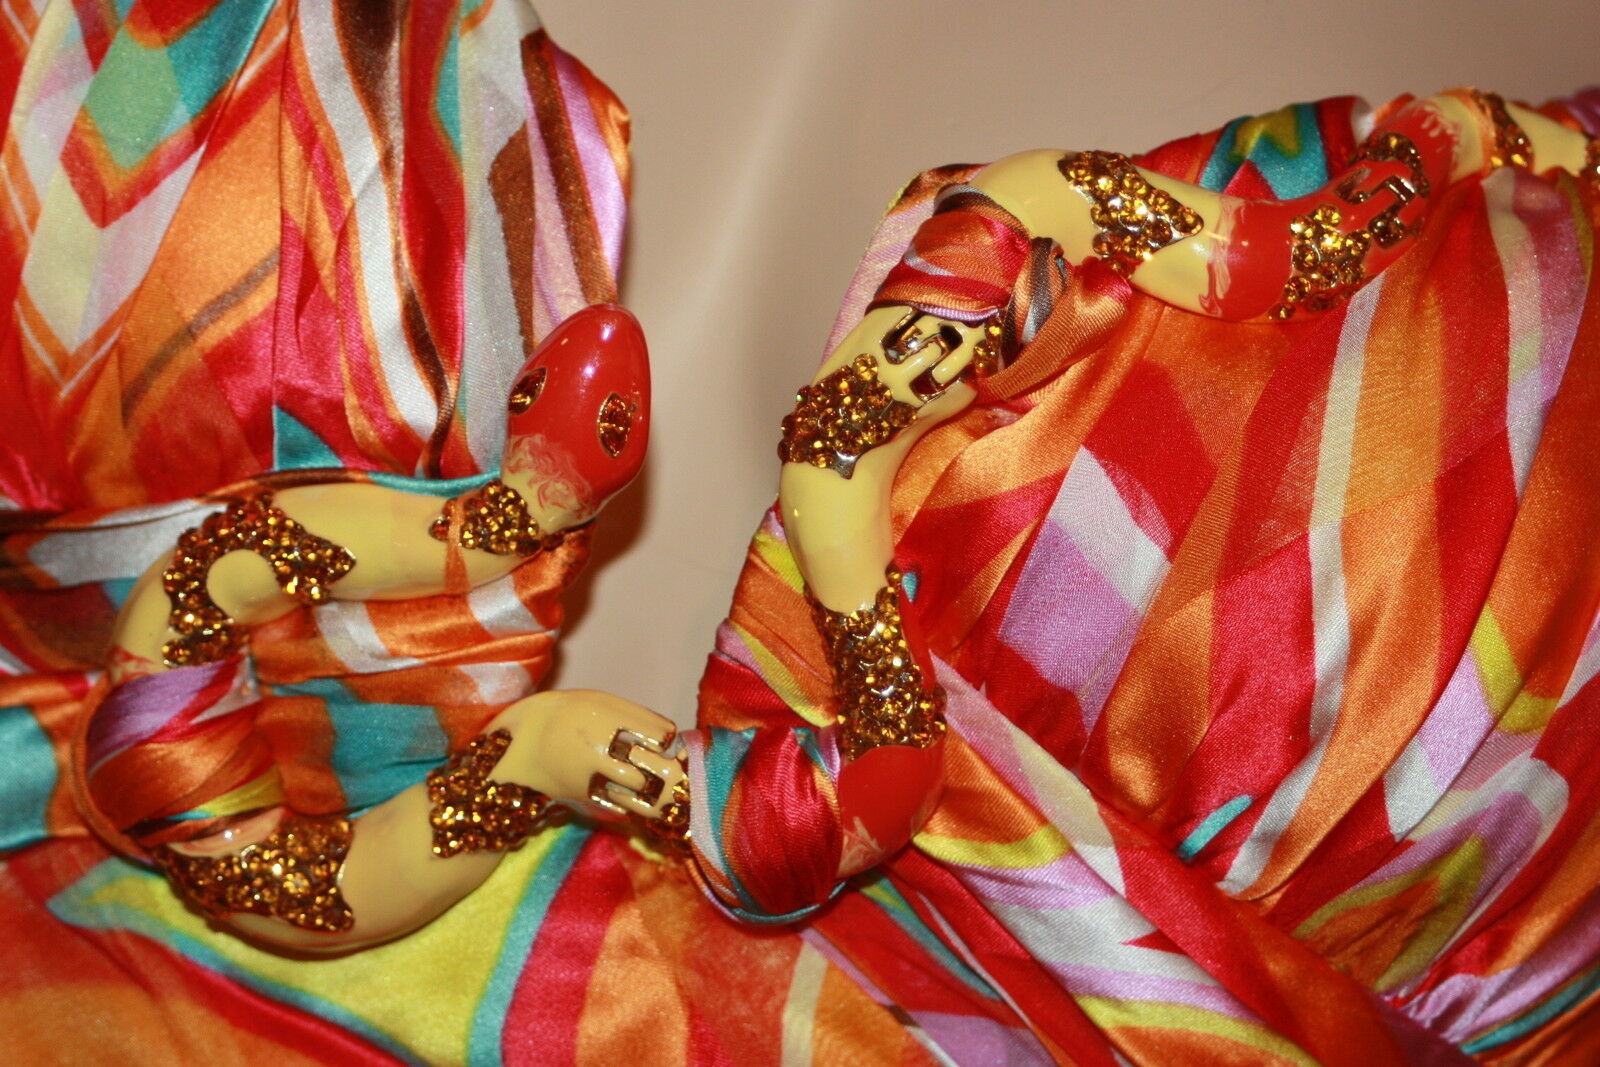 New GINGER & JAVA 8 M Bright colorful Crystal Snake Snake Snake Asymmetrical Silk Sun Dress 023726